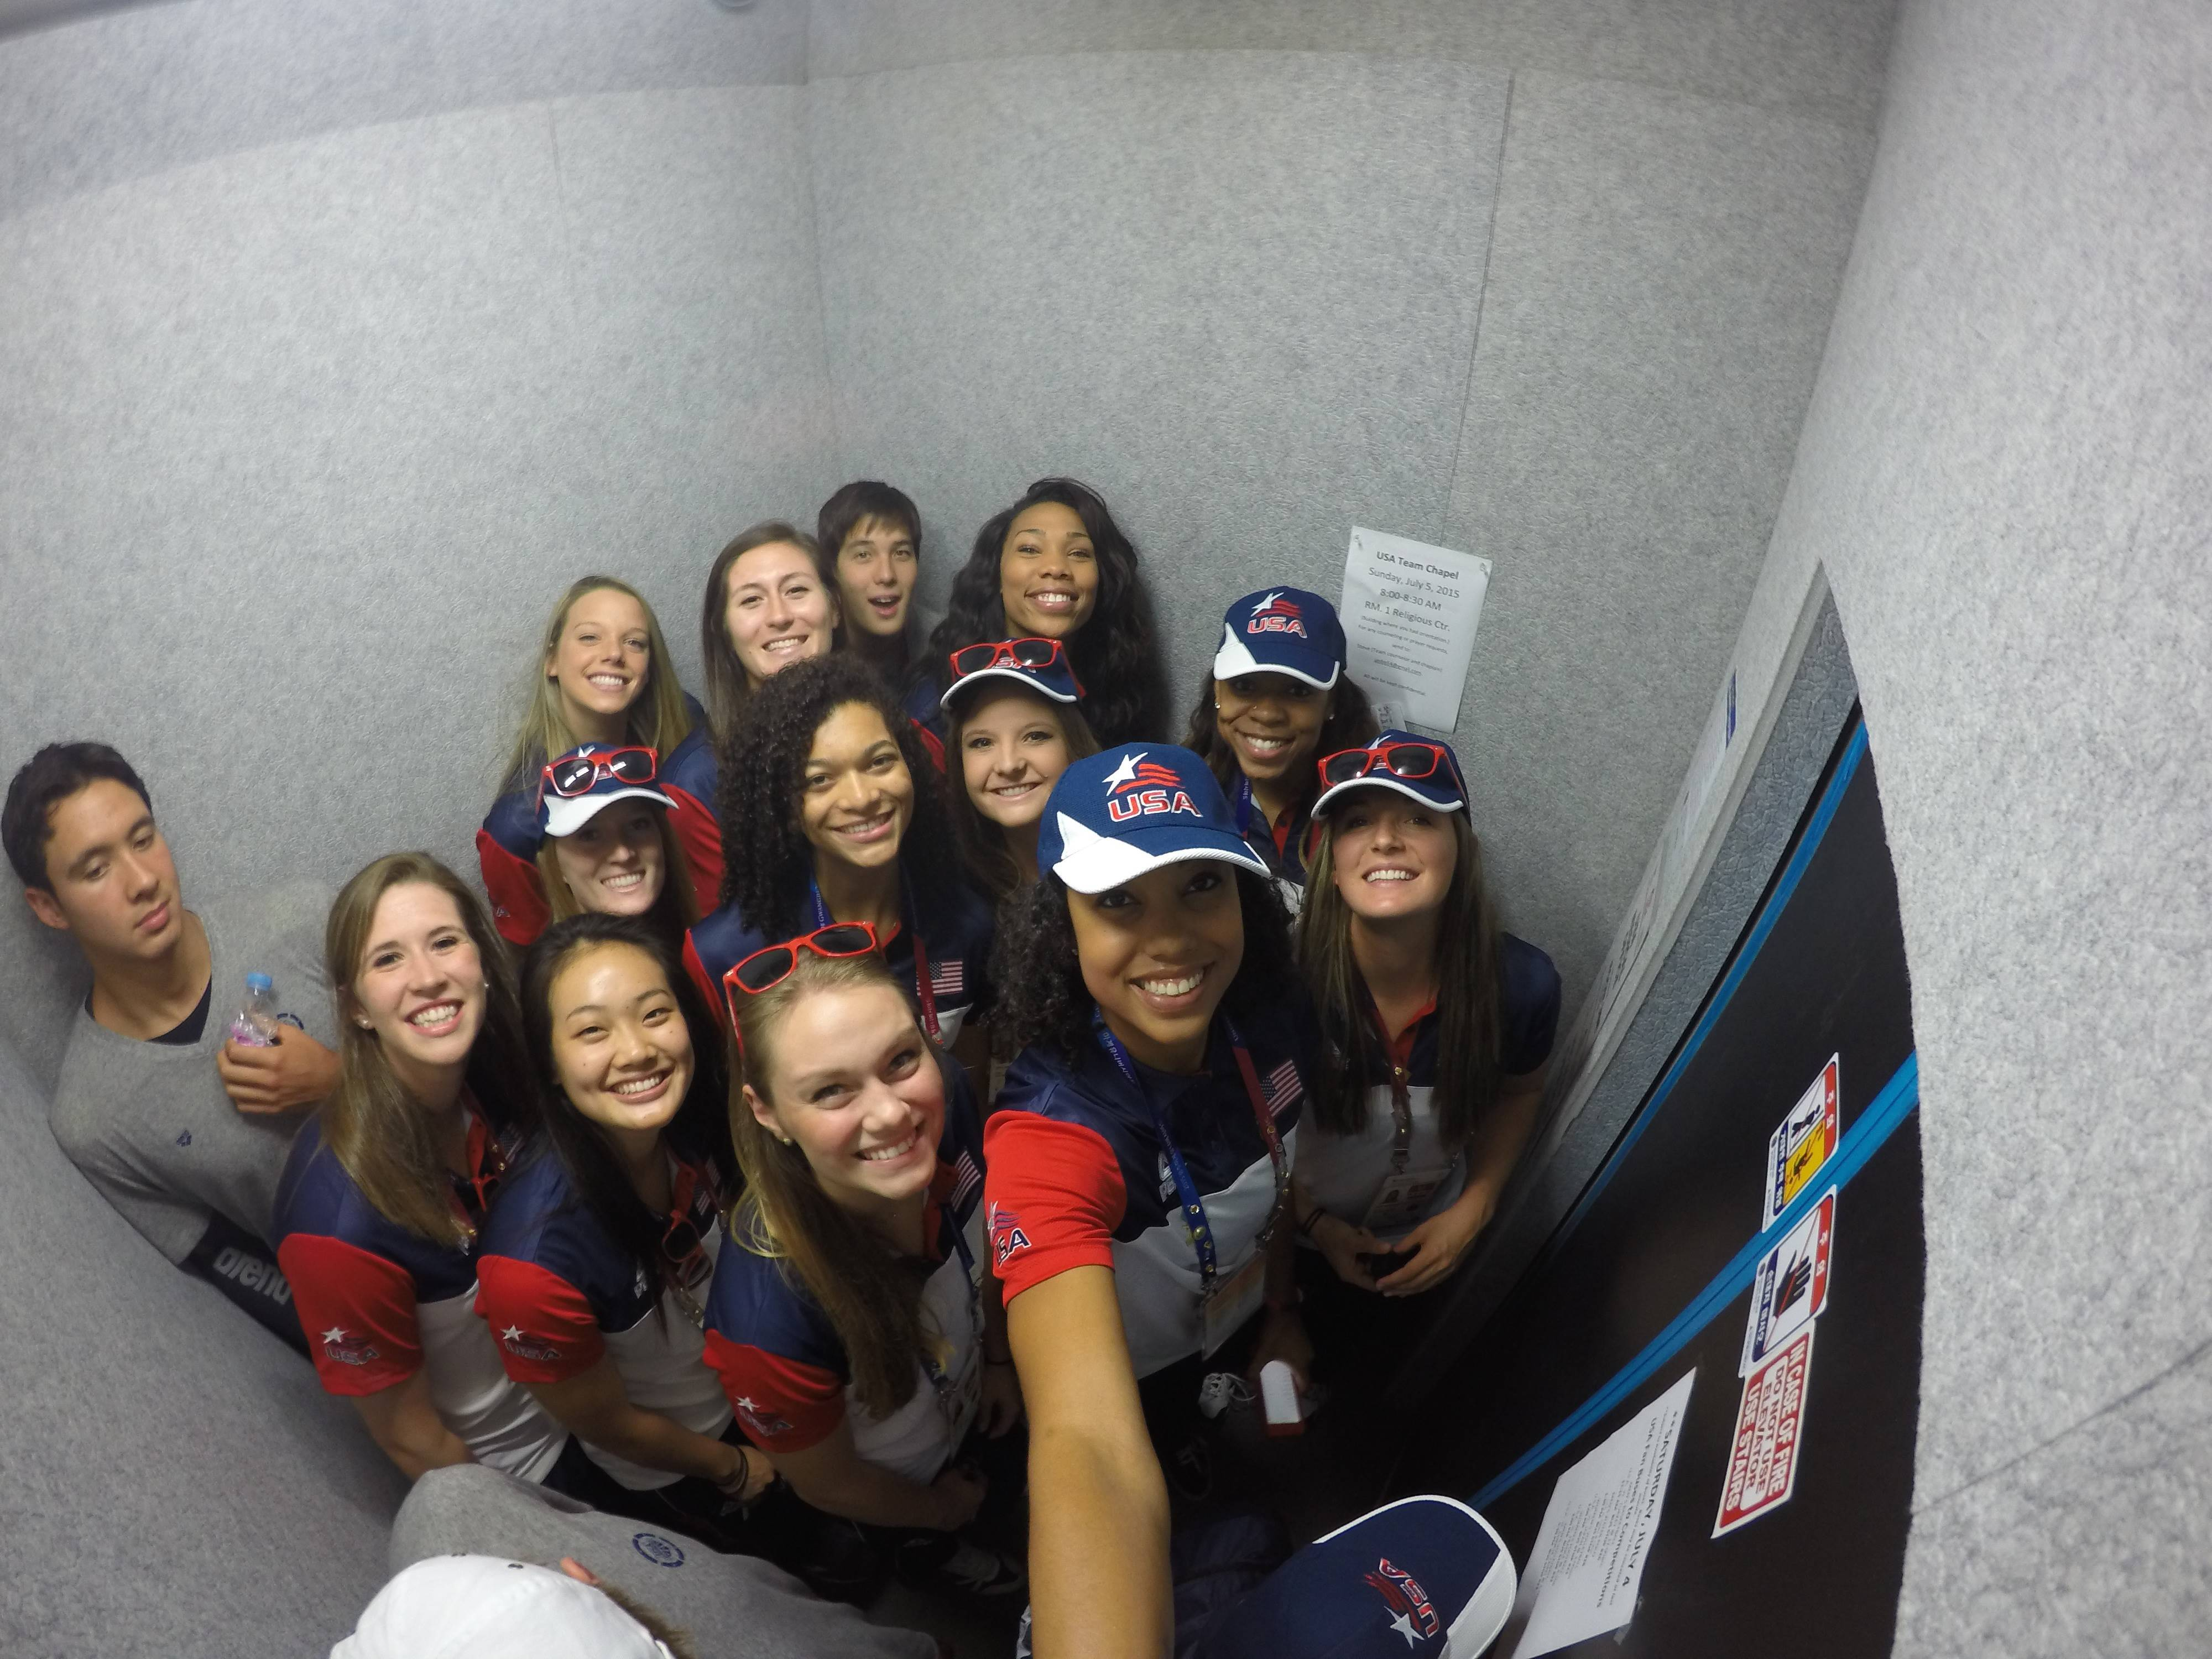 Team USA volleyball poses in an elevator.